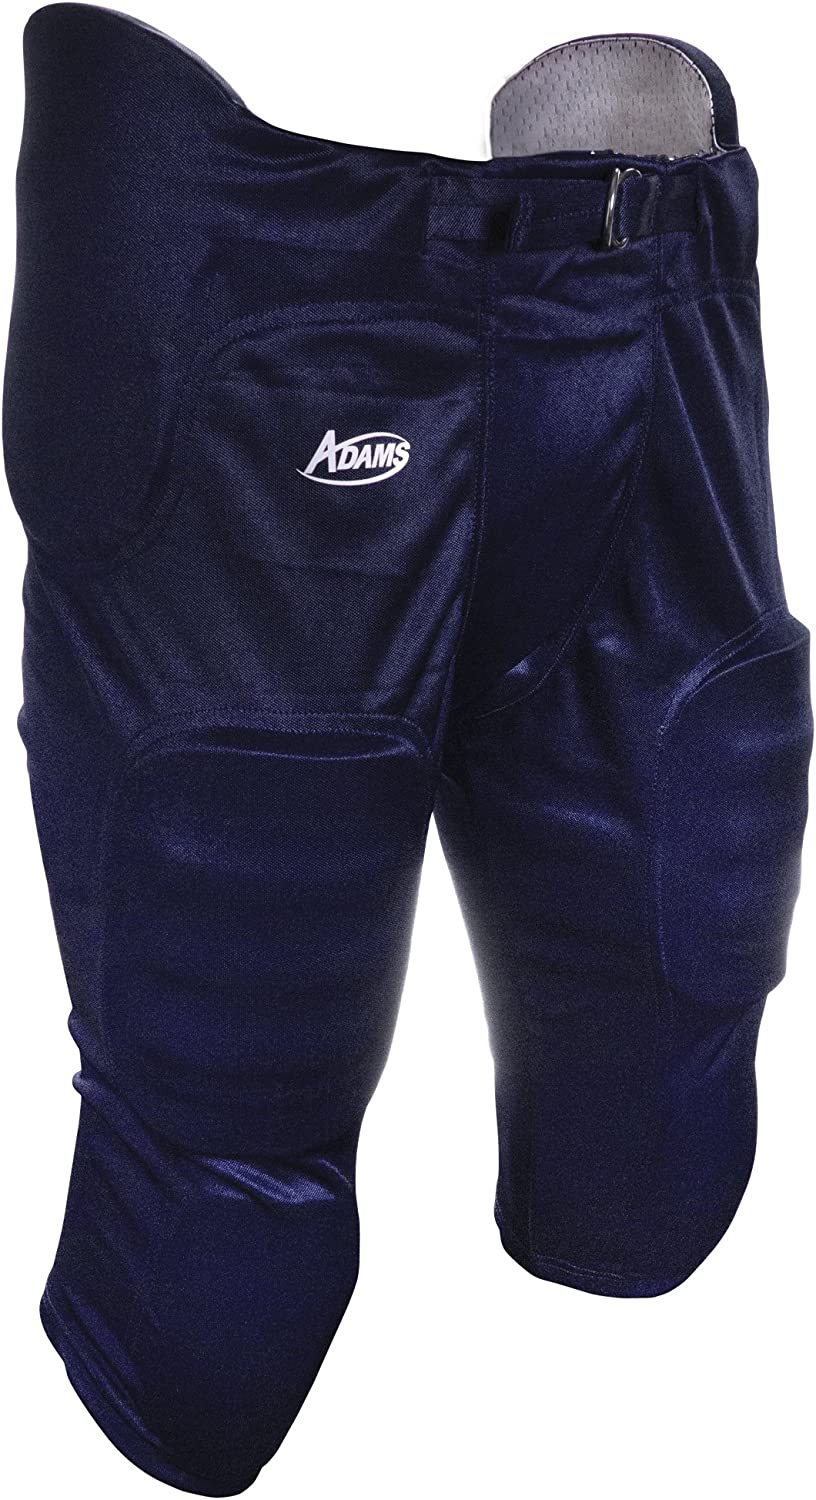 X-Small ADAMS USA Pro-Sheen Gameday Youth Football Pant with Integrated Pads Navy Blue